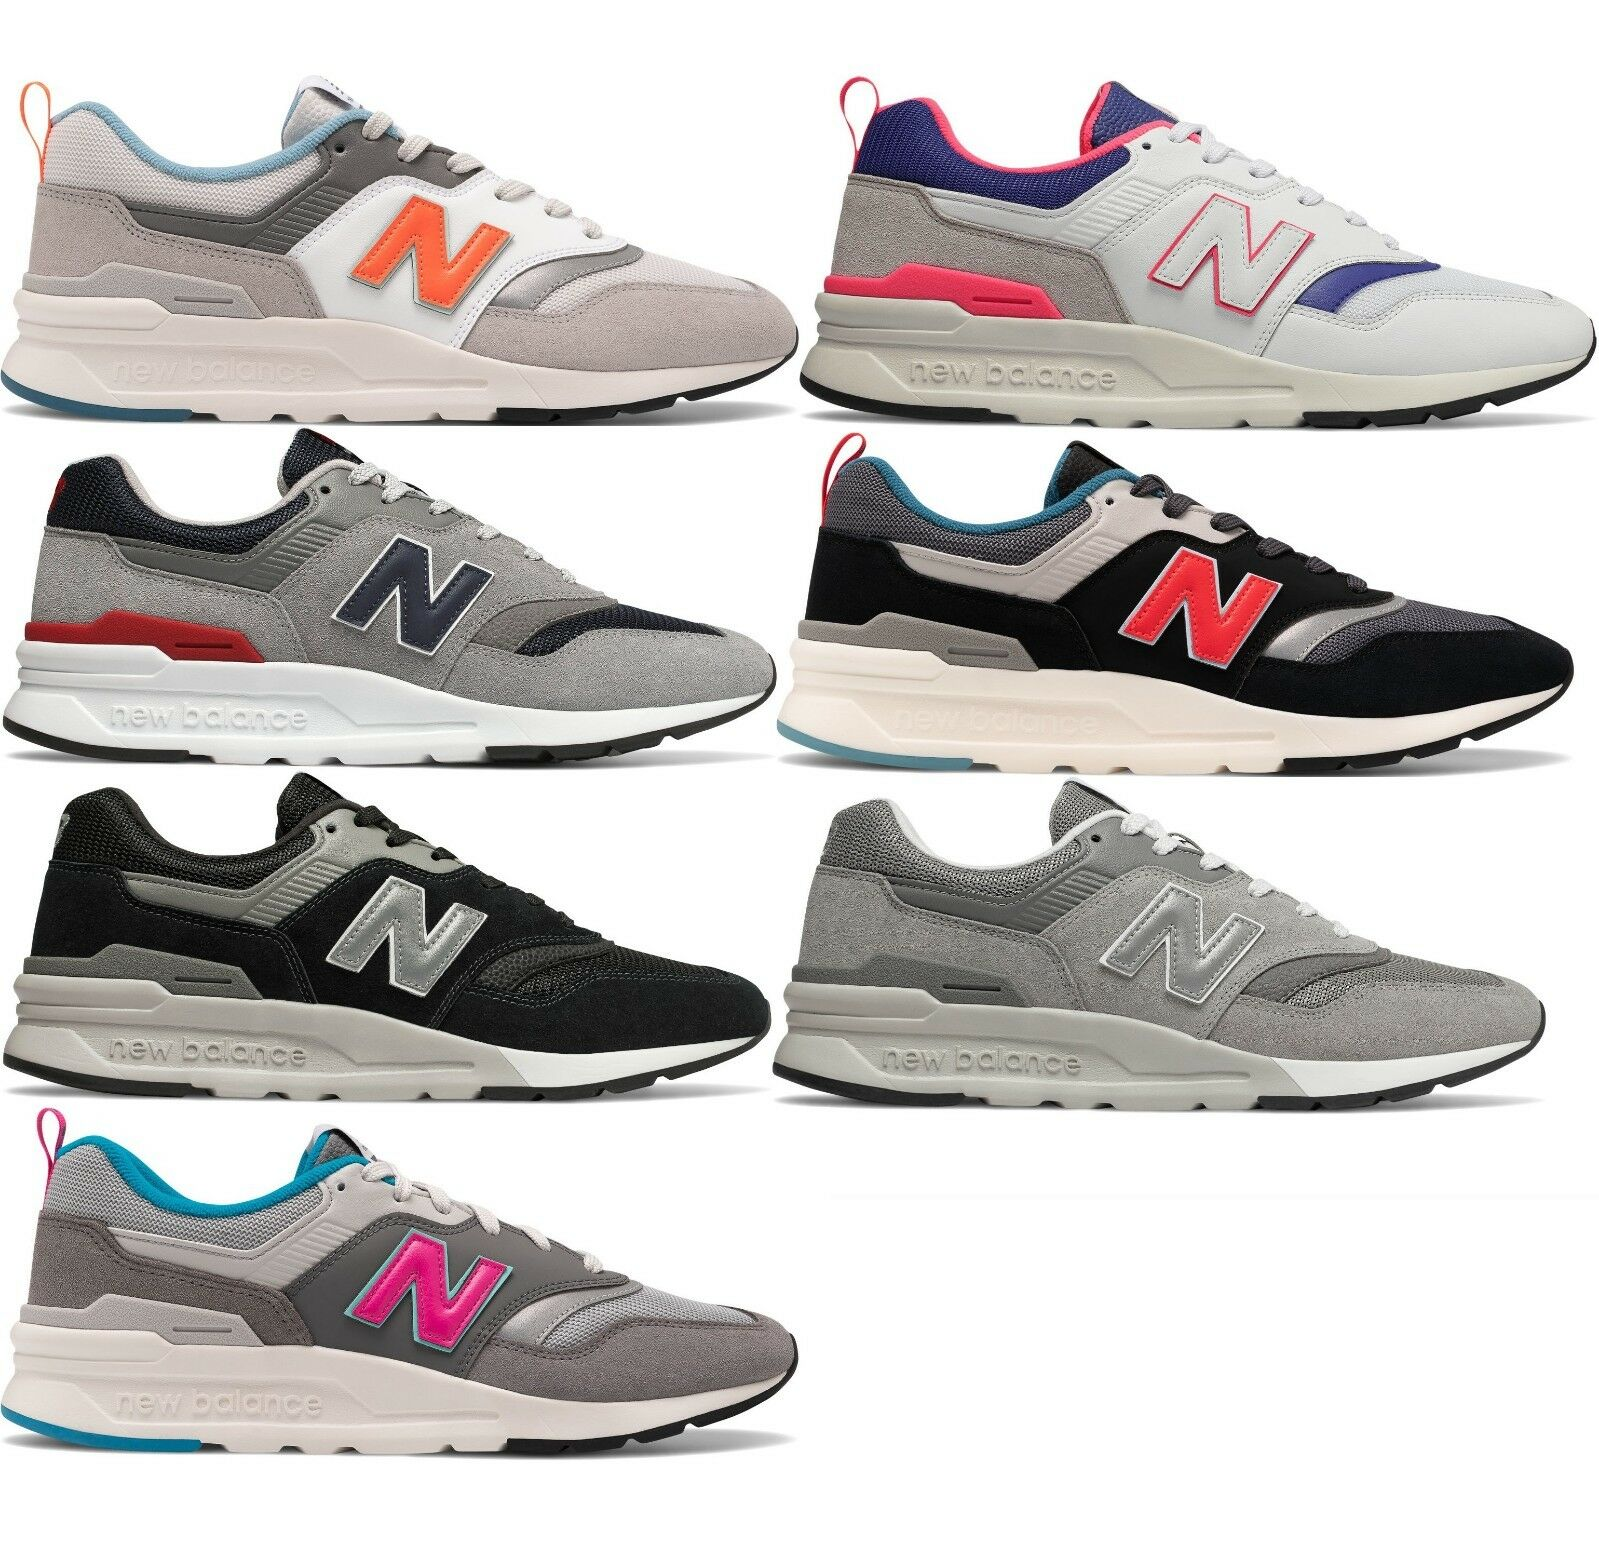 New Balance 997H Men's Sneakers Sport Style Comfy shoes